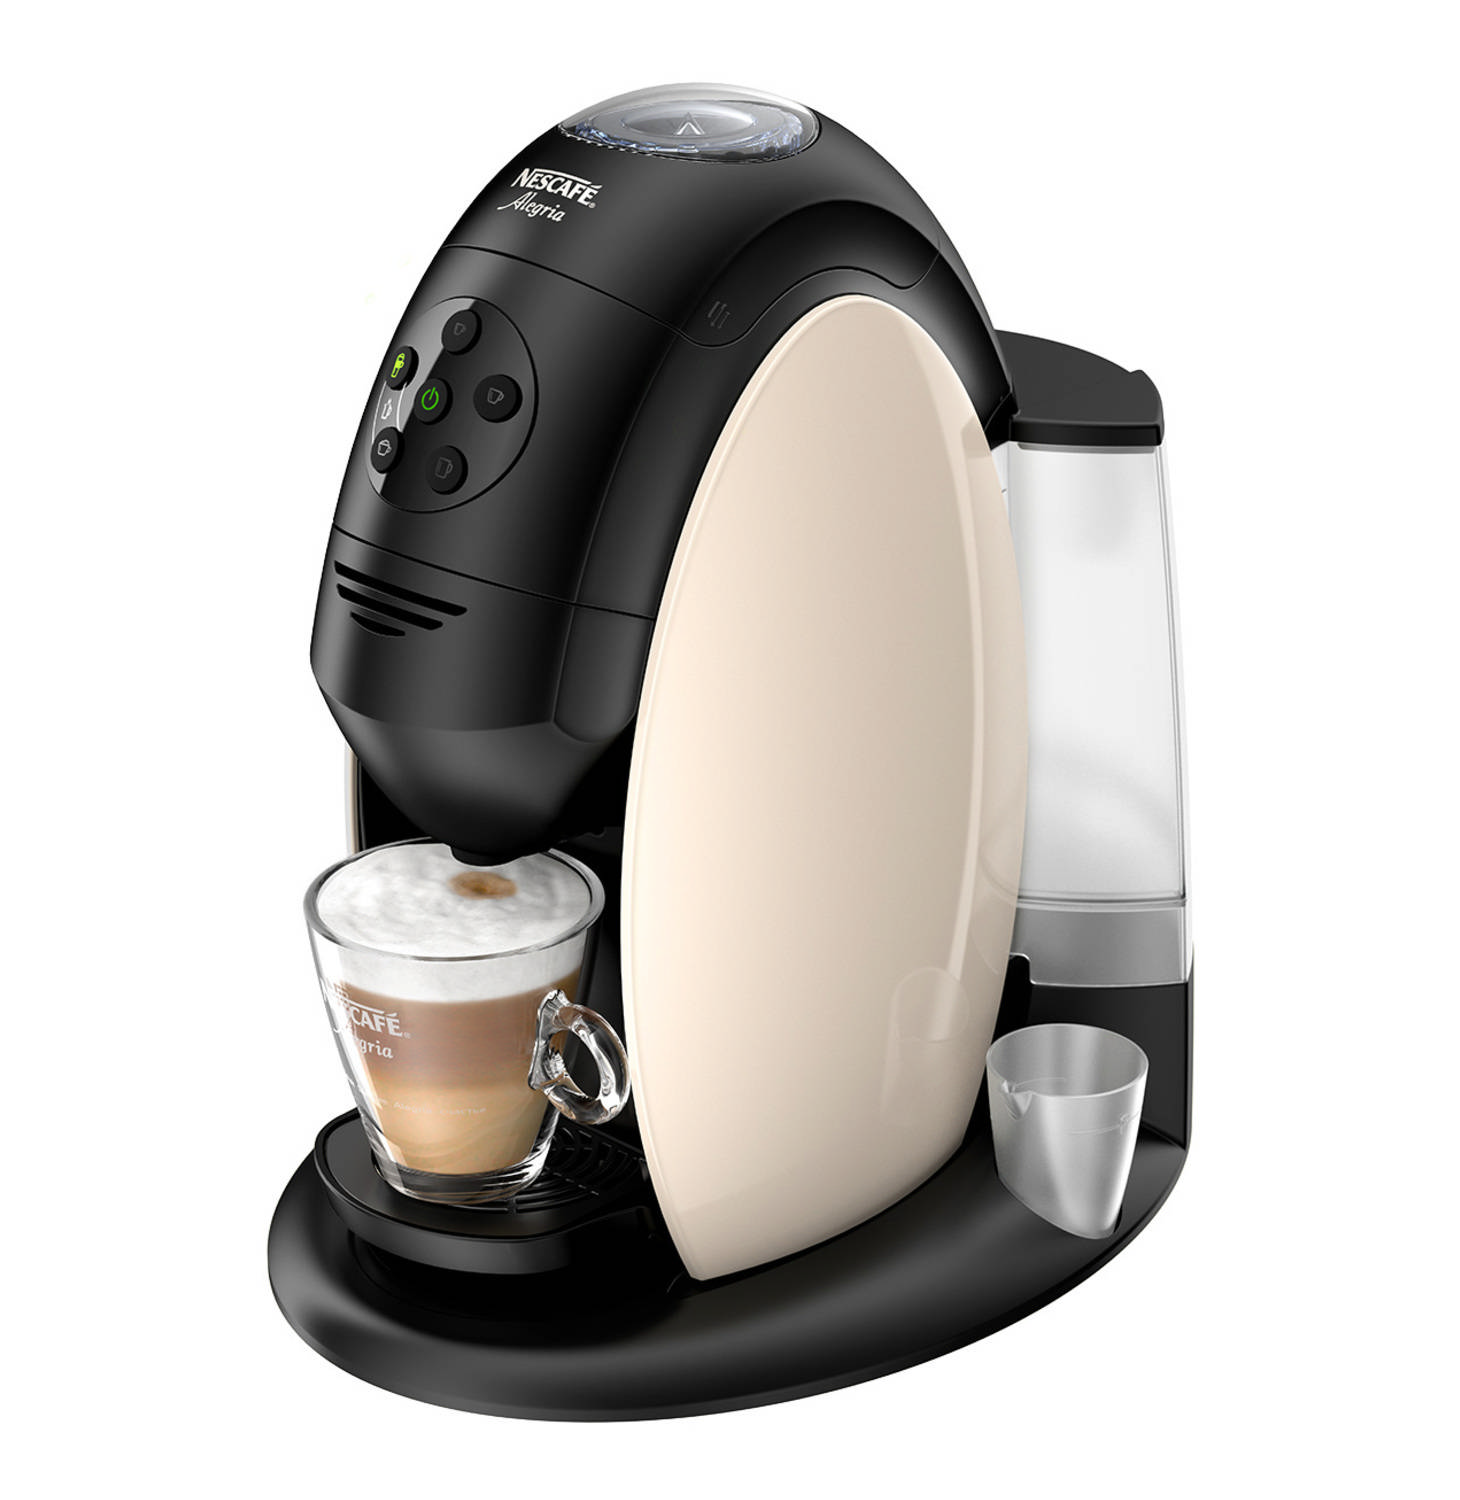 Nescafe Coffee Maker Woolworths : Festive Guide for Coffee Machines 2017